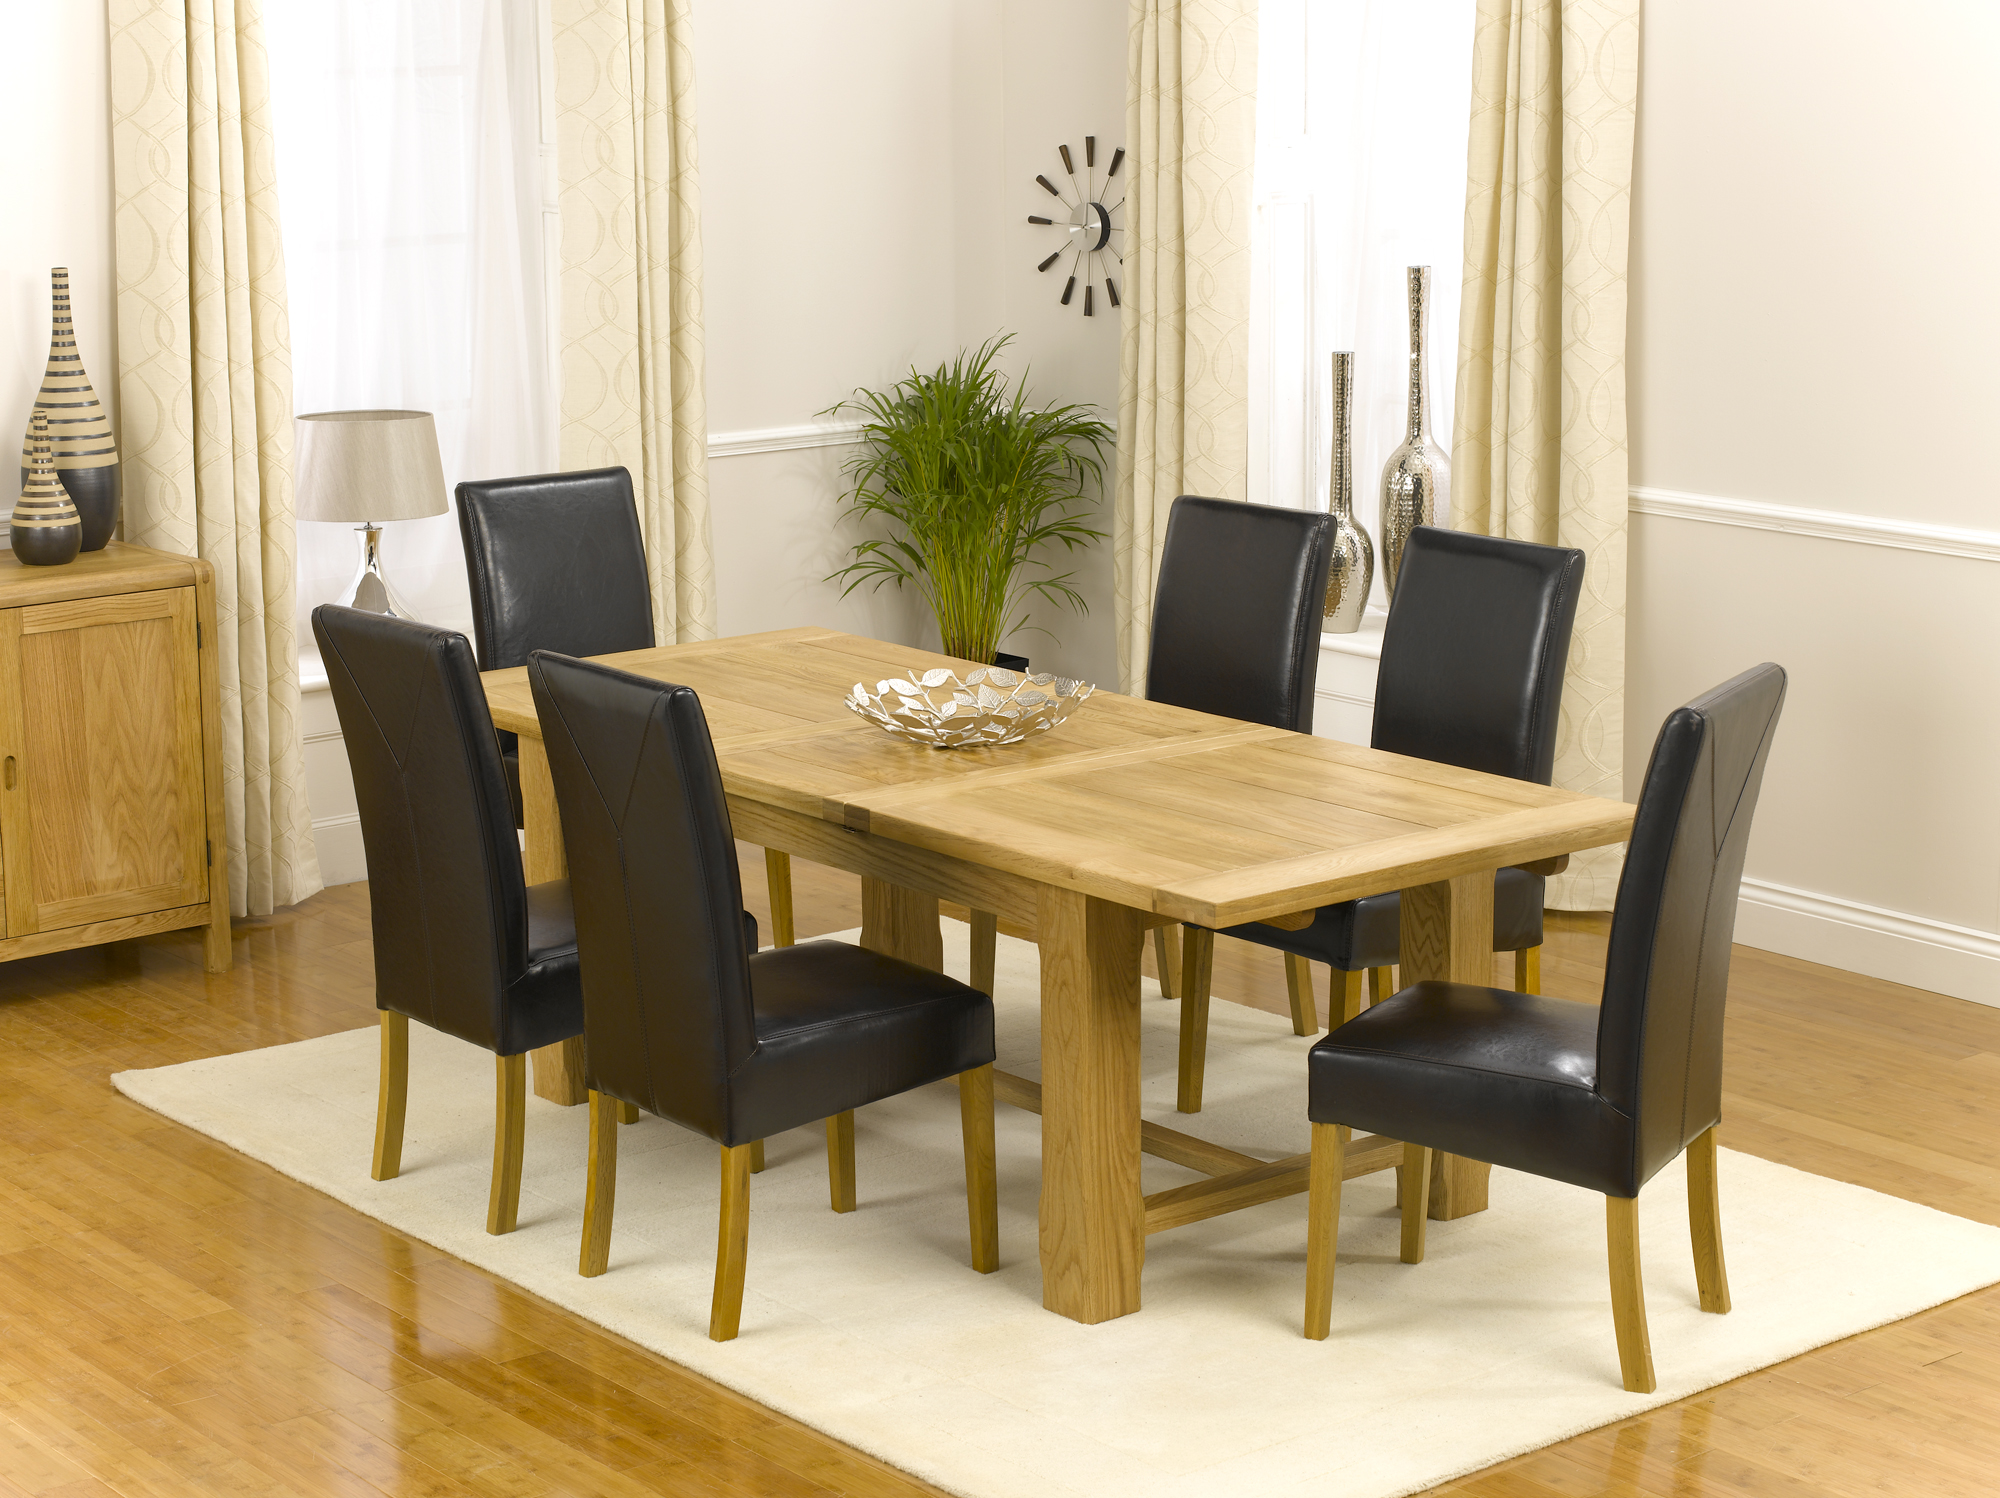 Dining Table Farmhouse Dining Table And 6 Chairs